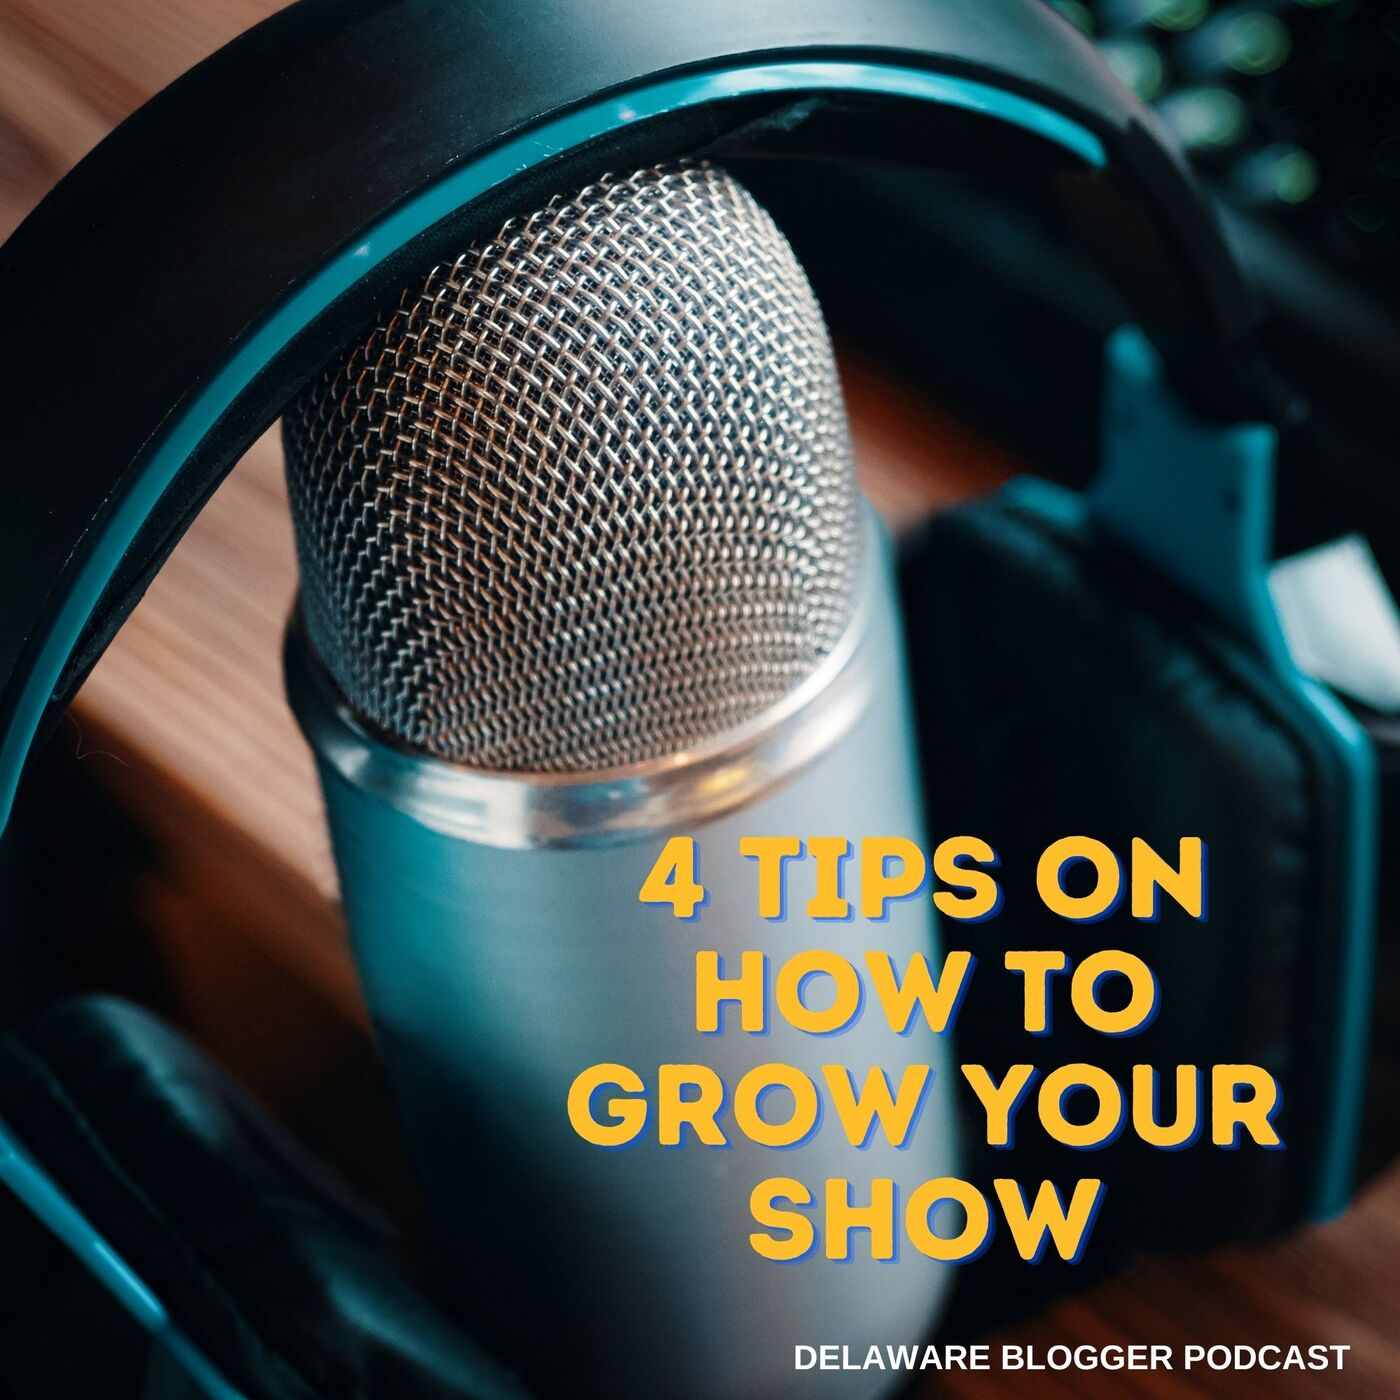 4 Tips on How To Grow Your Show